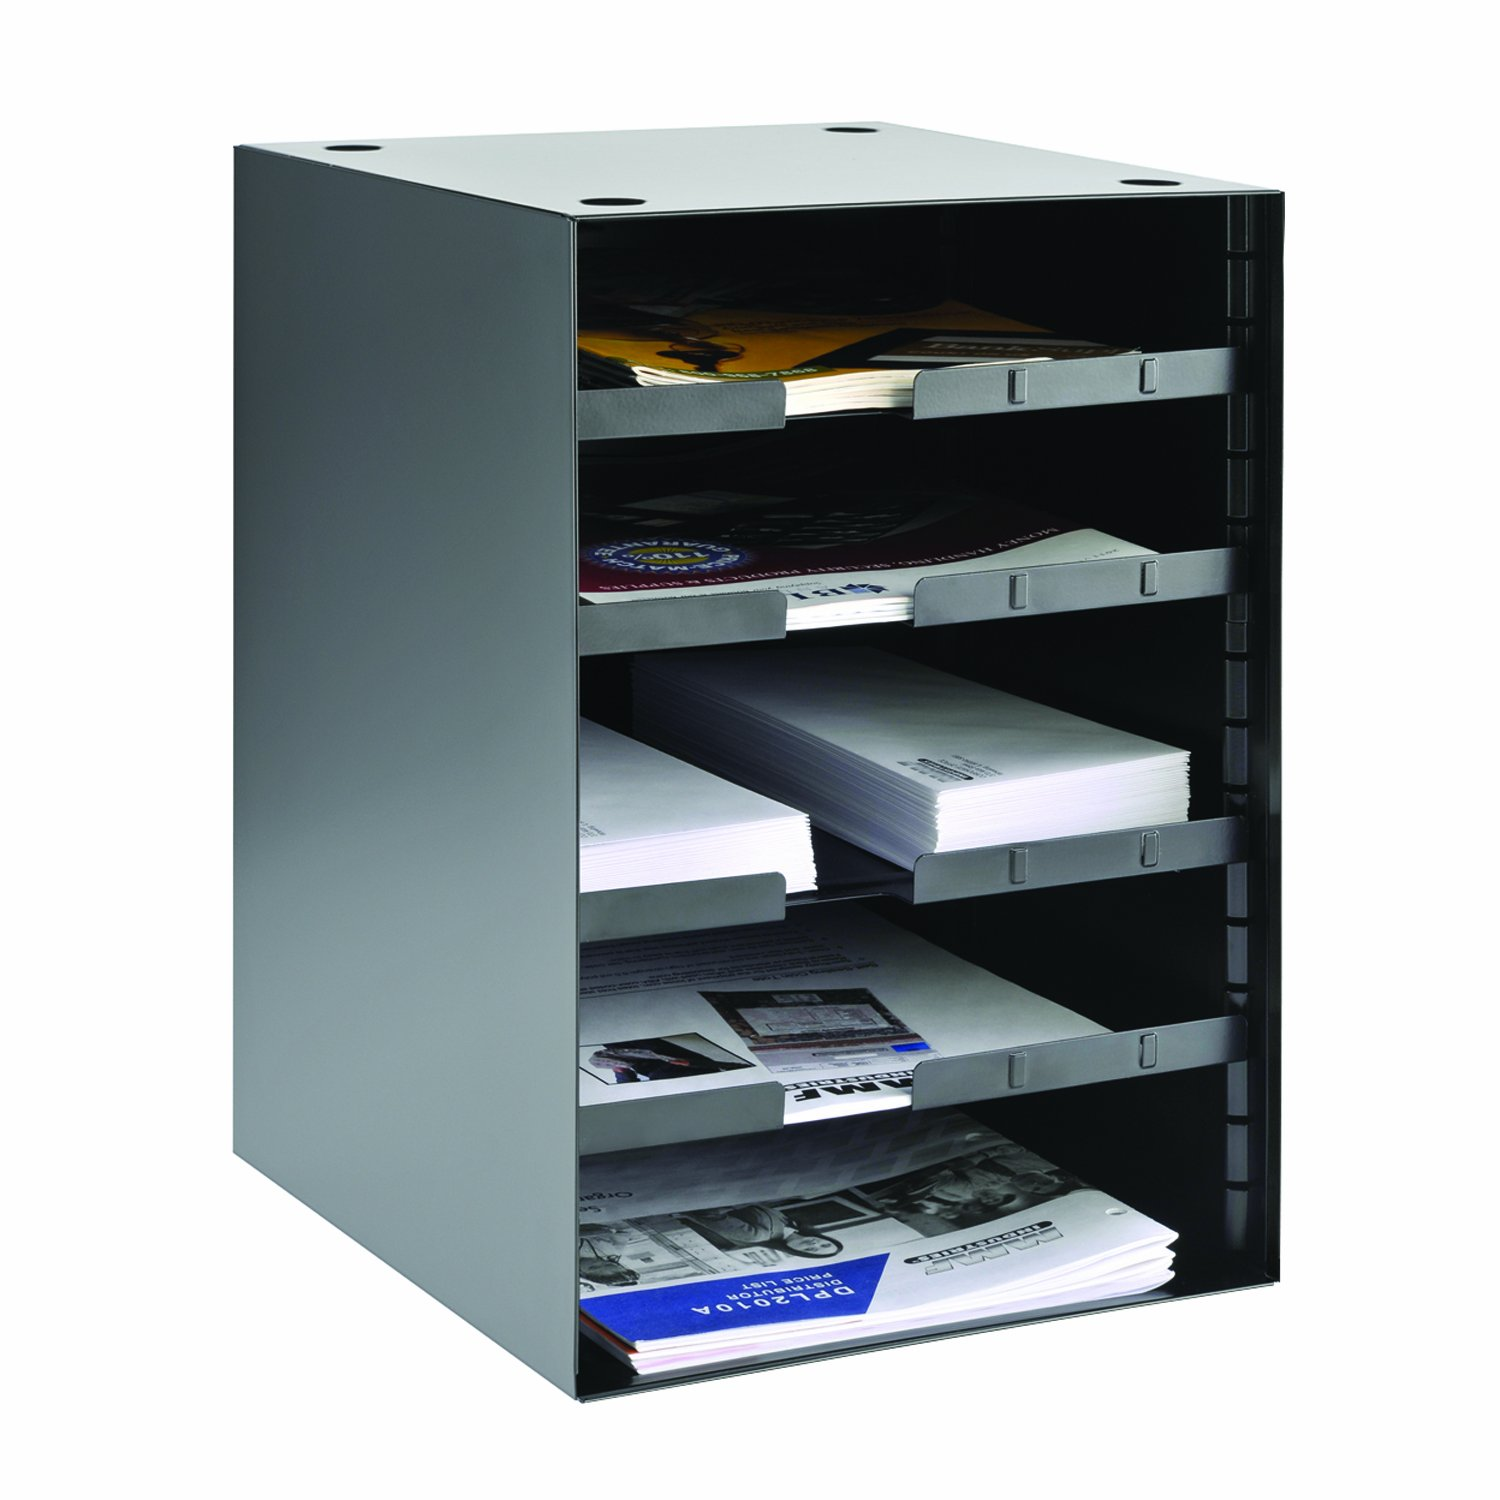 STEELMASTER 5-Tier Organizer with 4 Adjustable Shelves, 11.22 x 19.62 x 12.01 Inches, Black (206511004) by MMF Industries